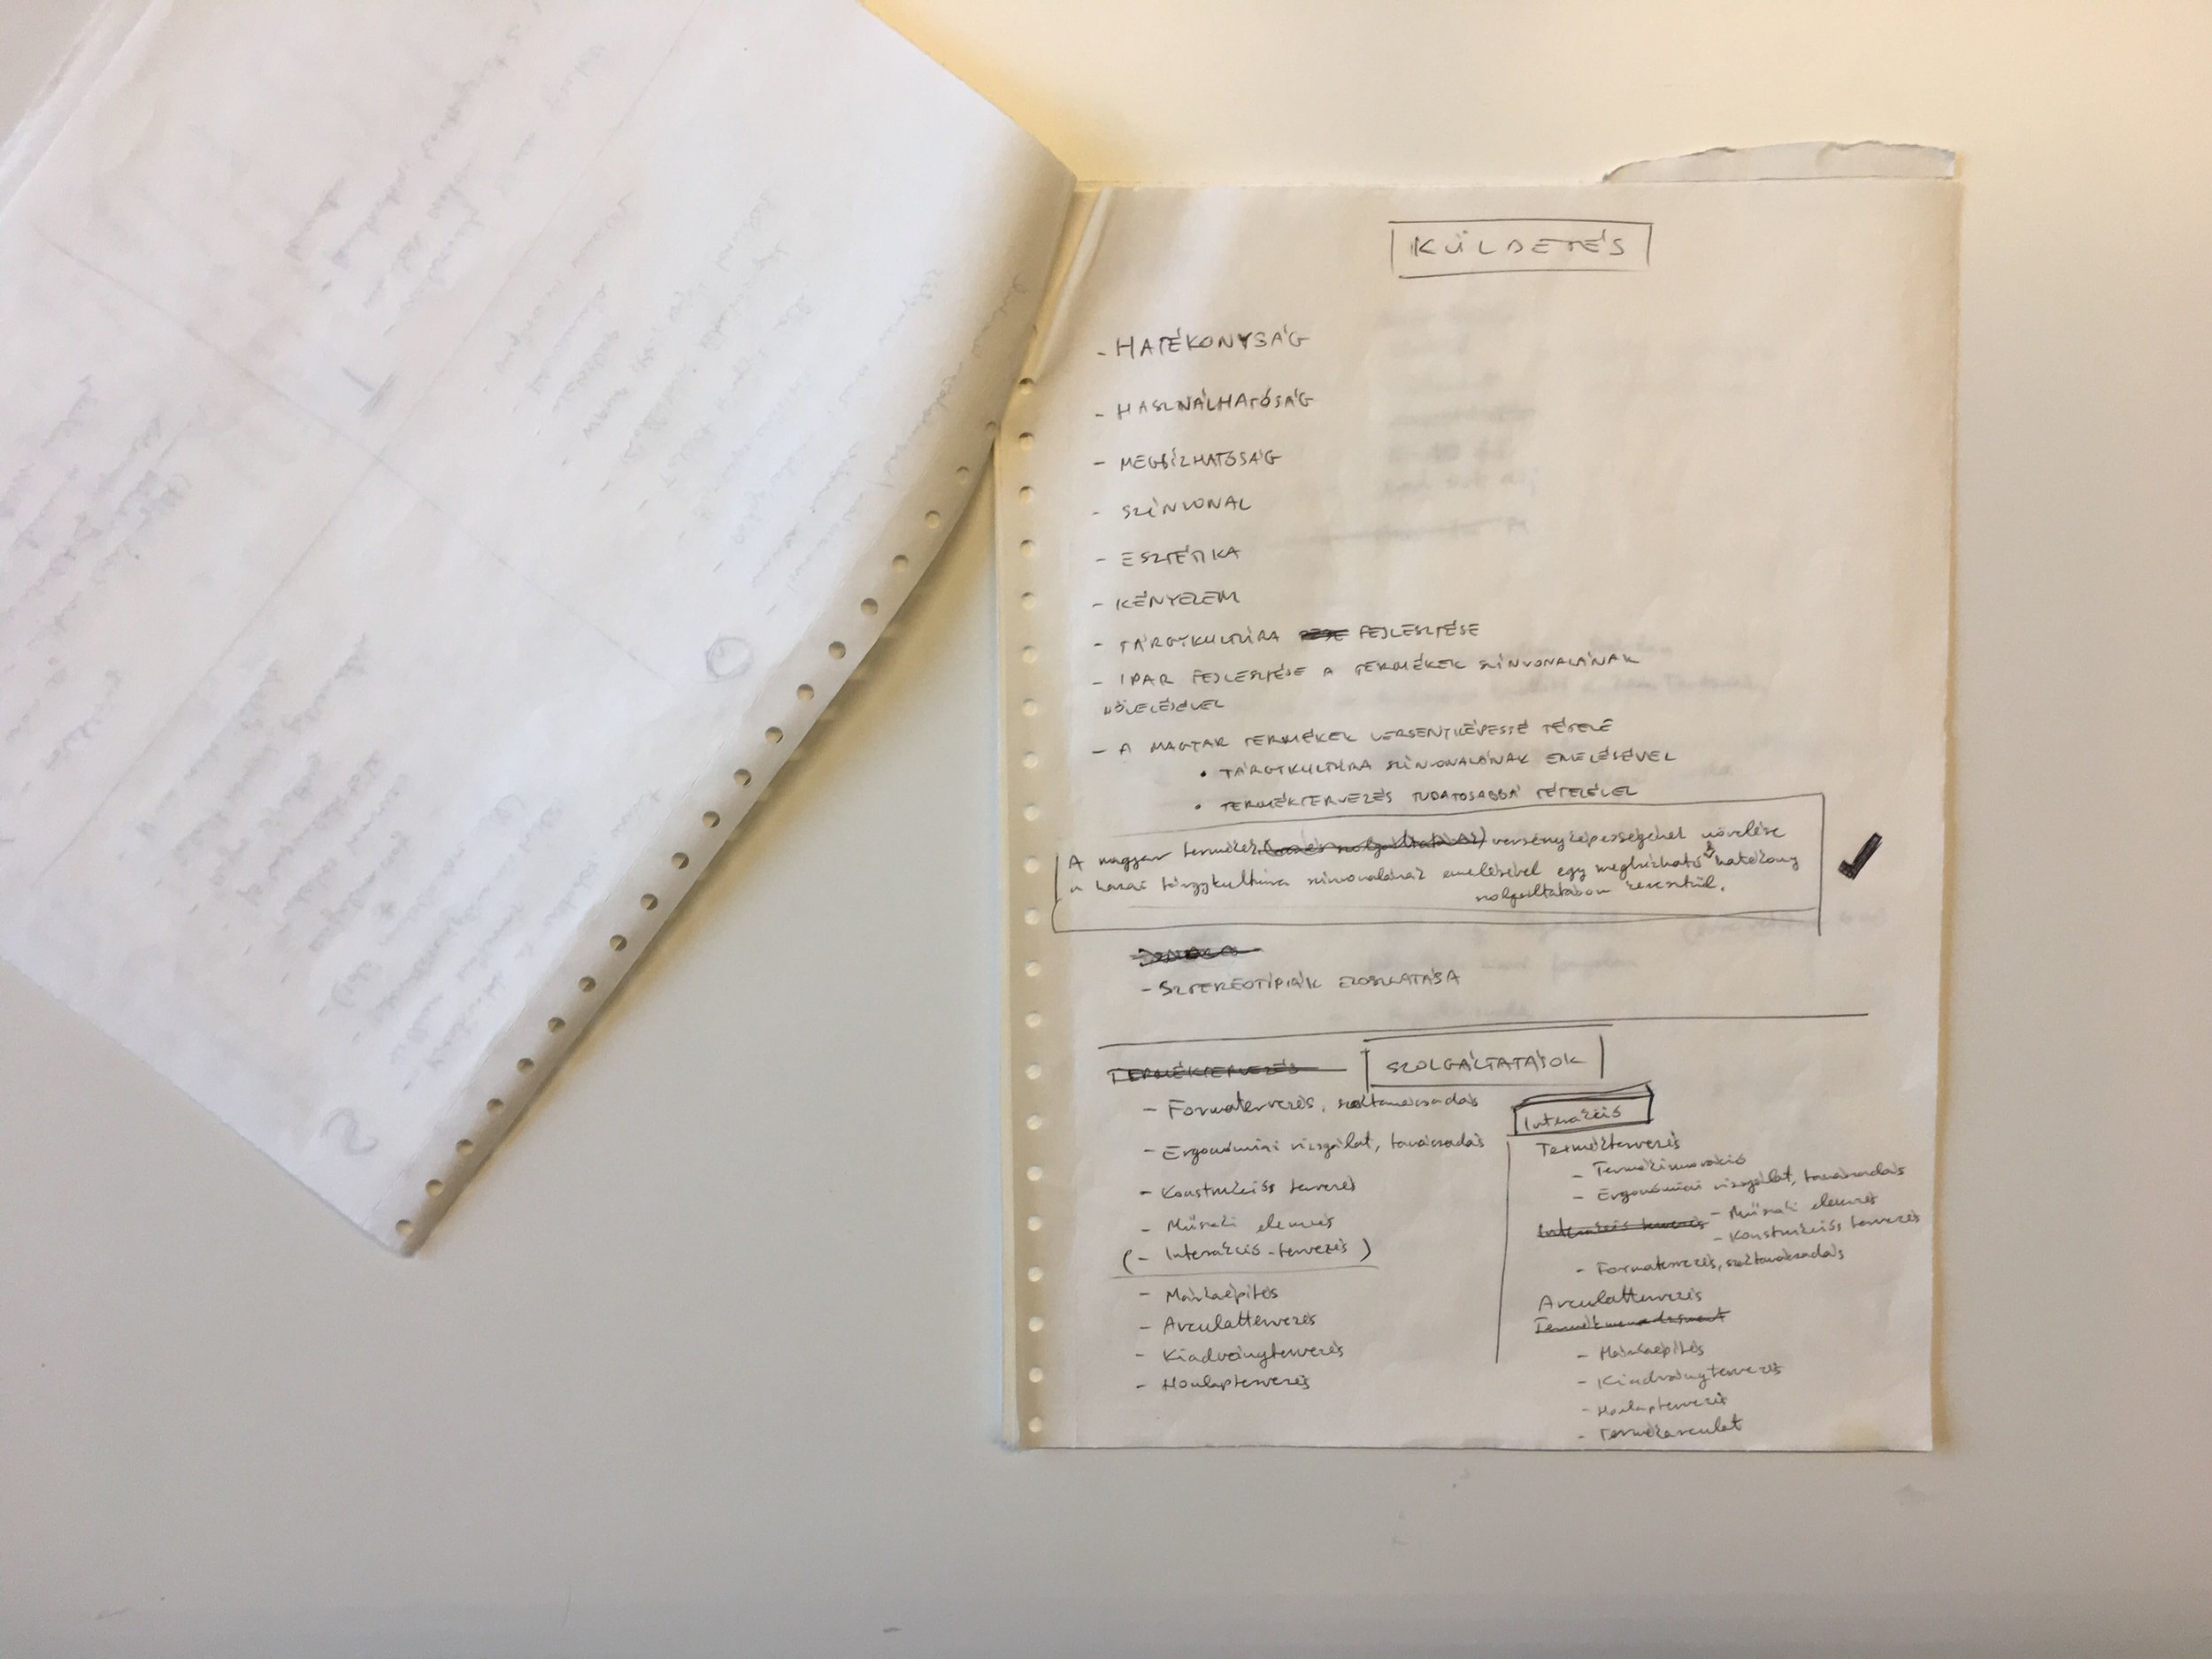 Our very first business plan was drafted on sheets of discarded continuous stationary that we found at the university campus. Most surprisingly, we pretty much kept our original plan – overachieved a bit.